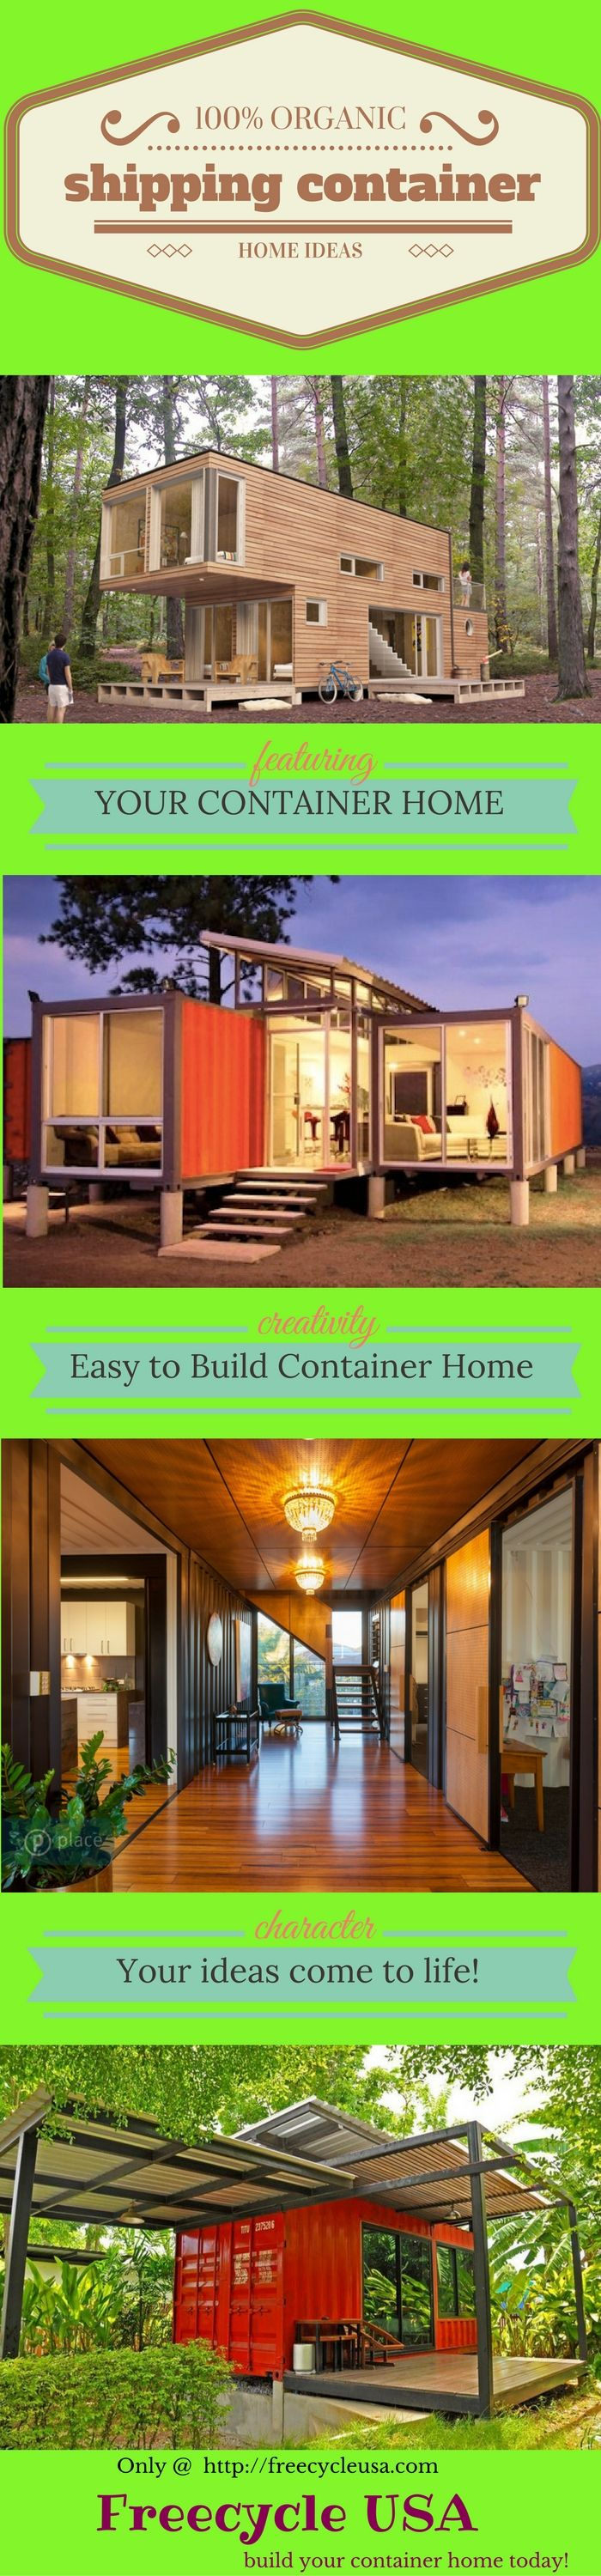 949 best container homes images on pinterest | shipping containers